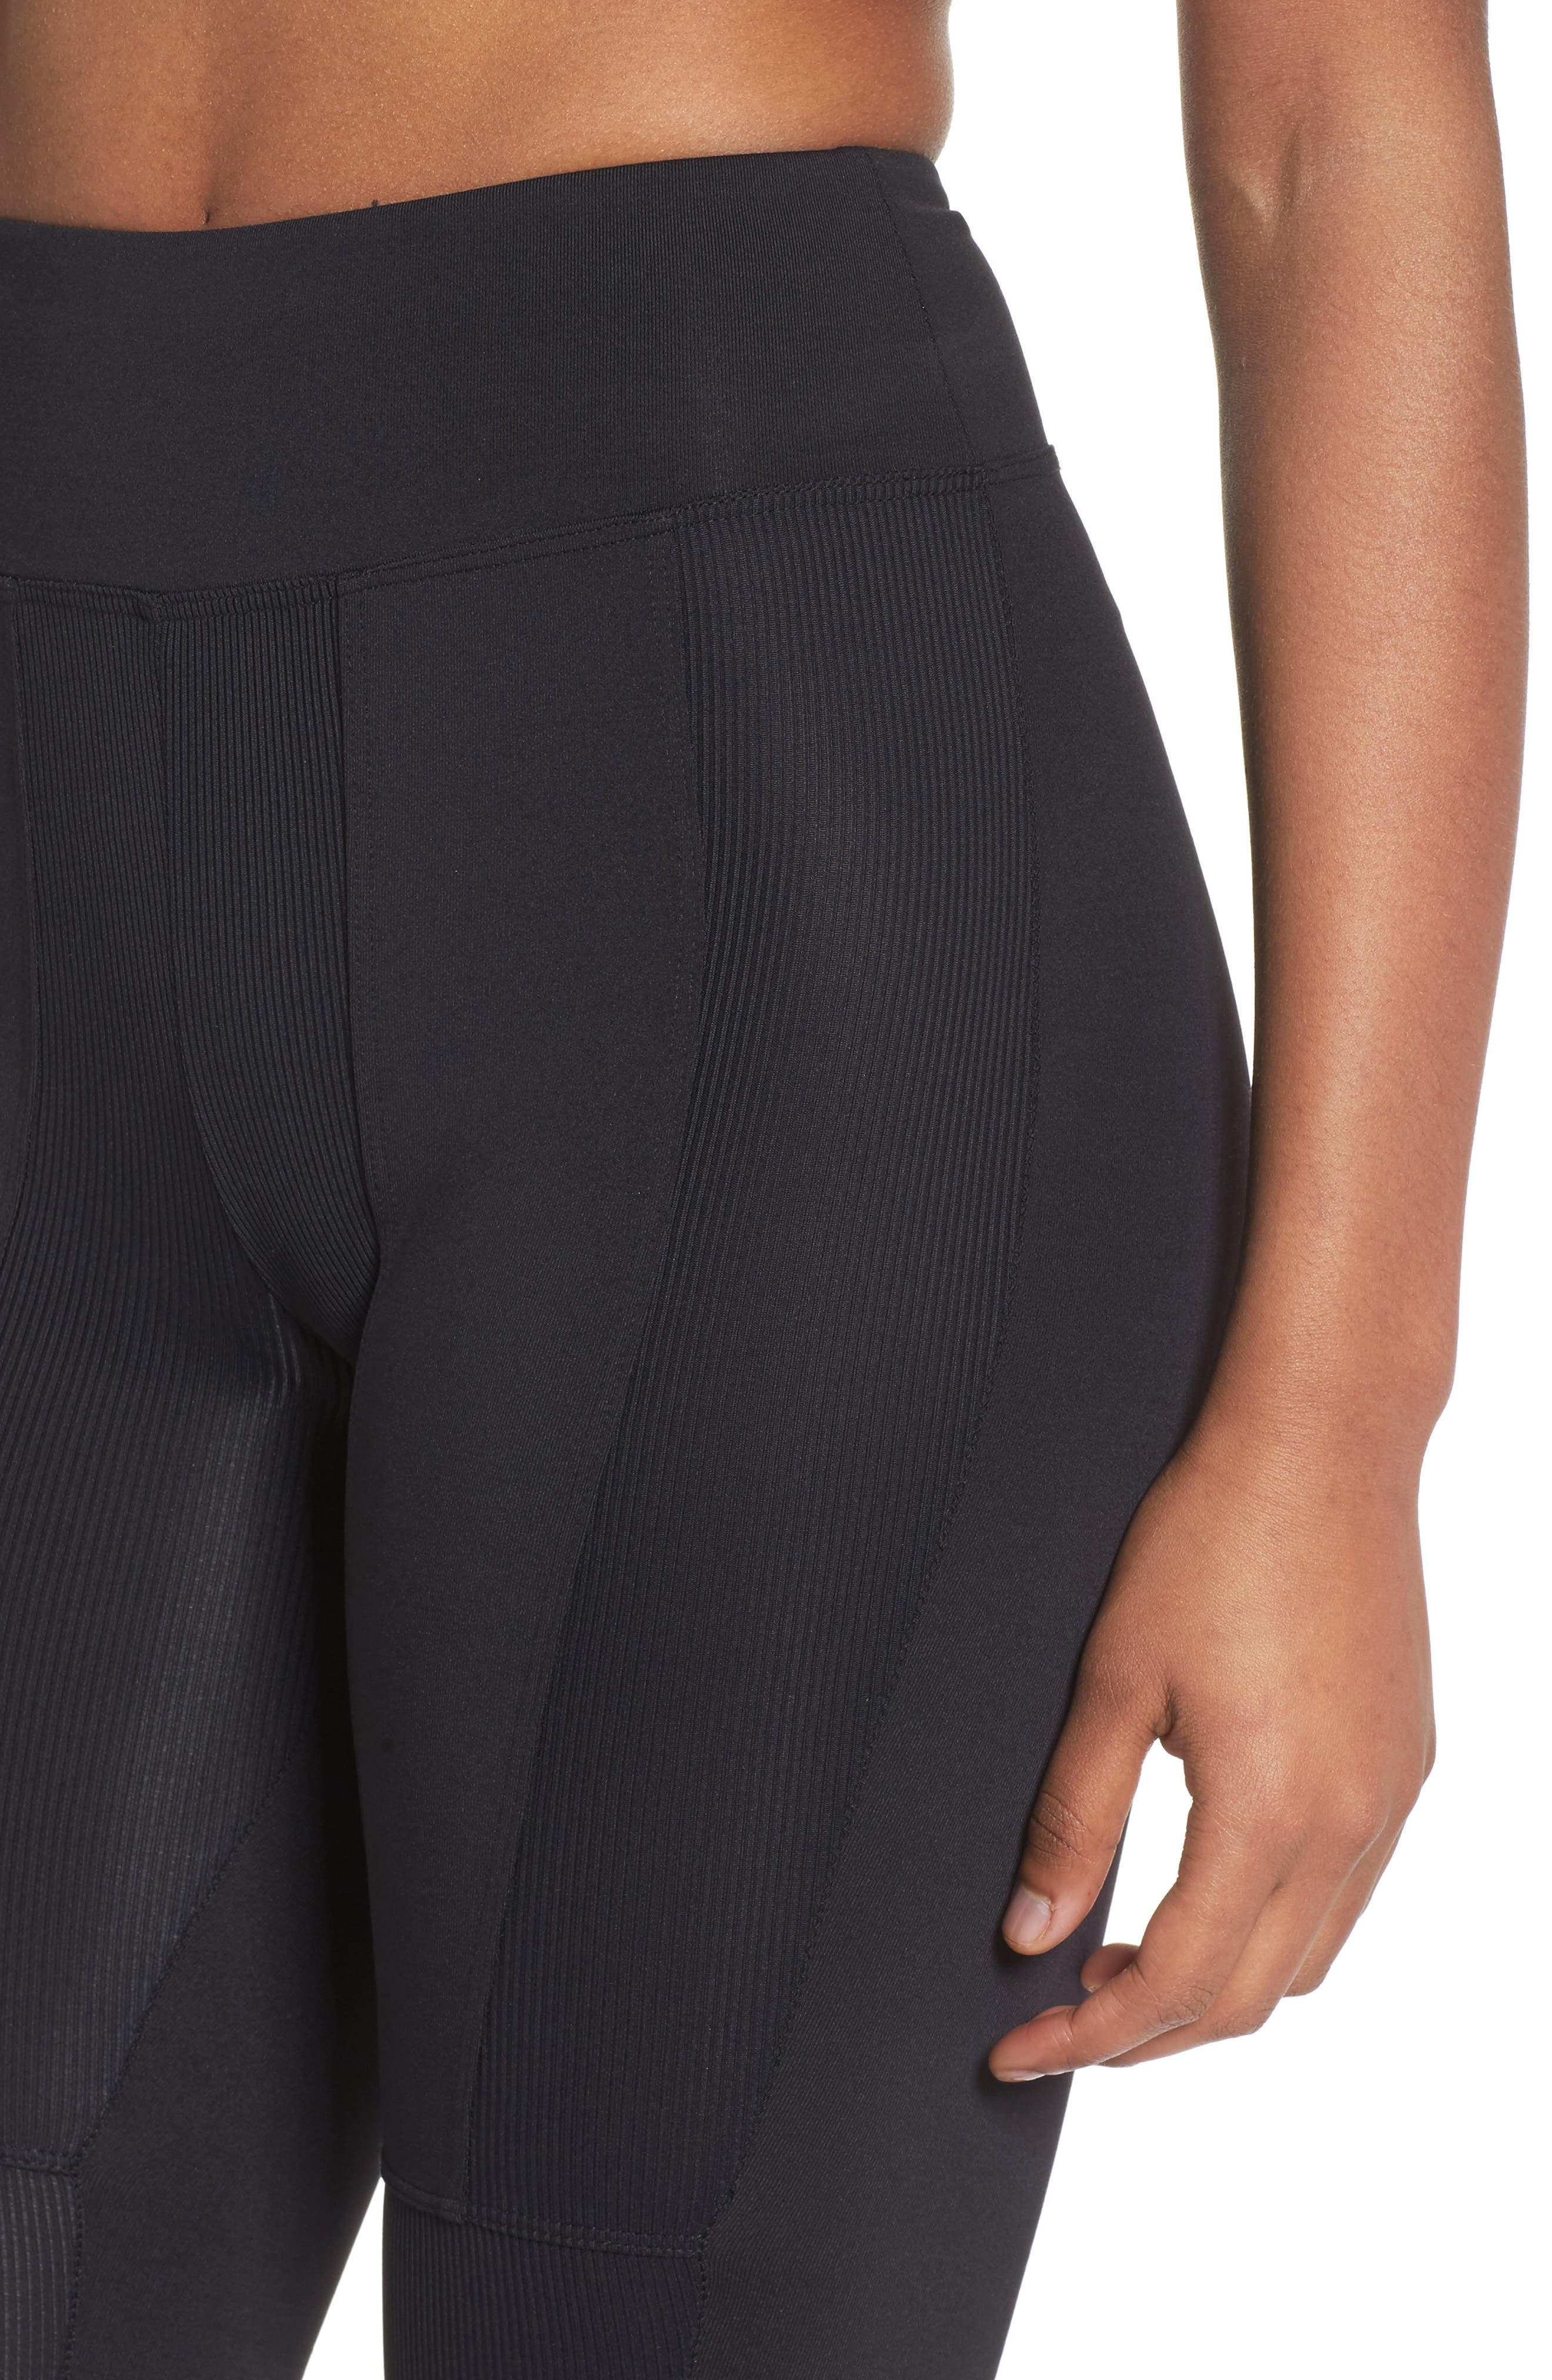 Rappel High Waist Leggings,                             Alternate thumbnail 4, color,                             001